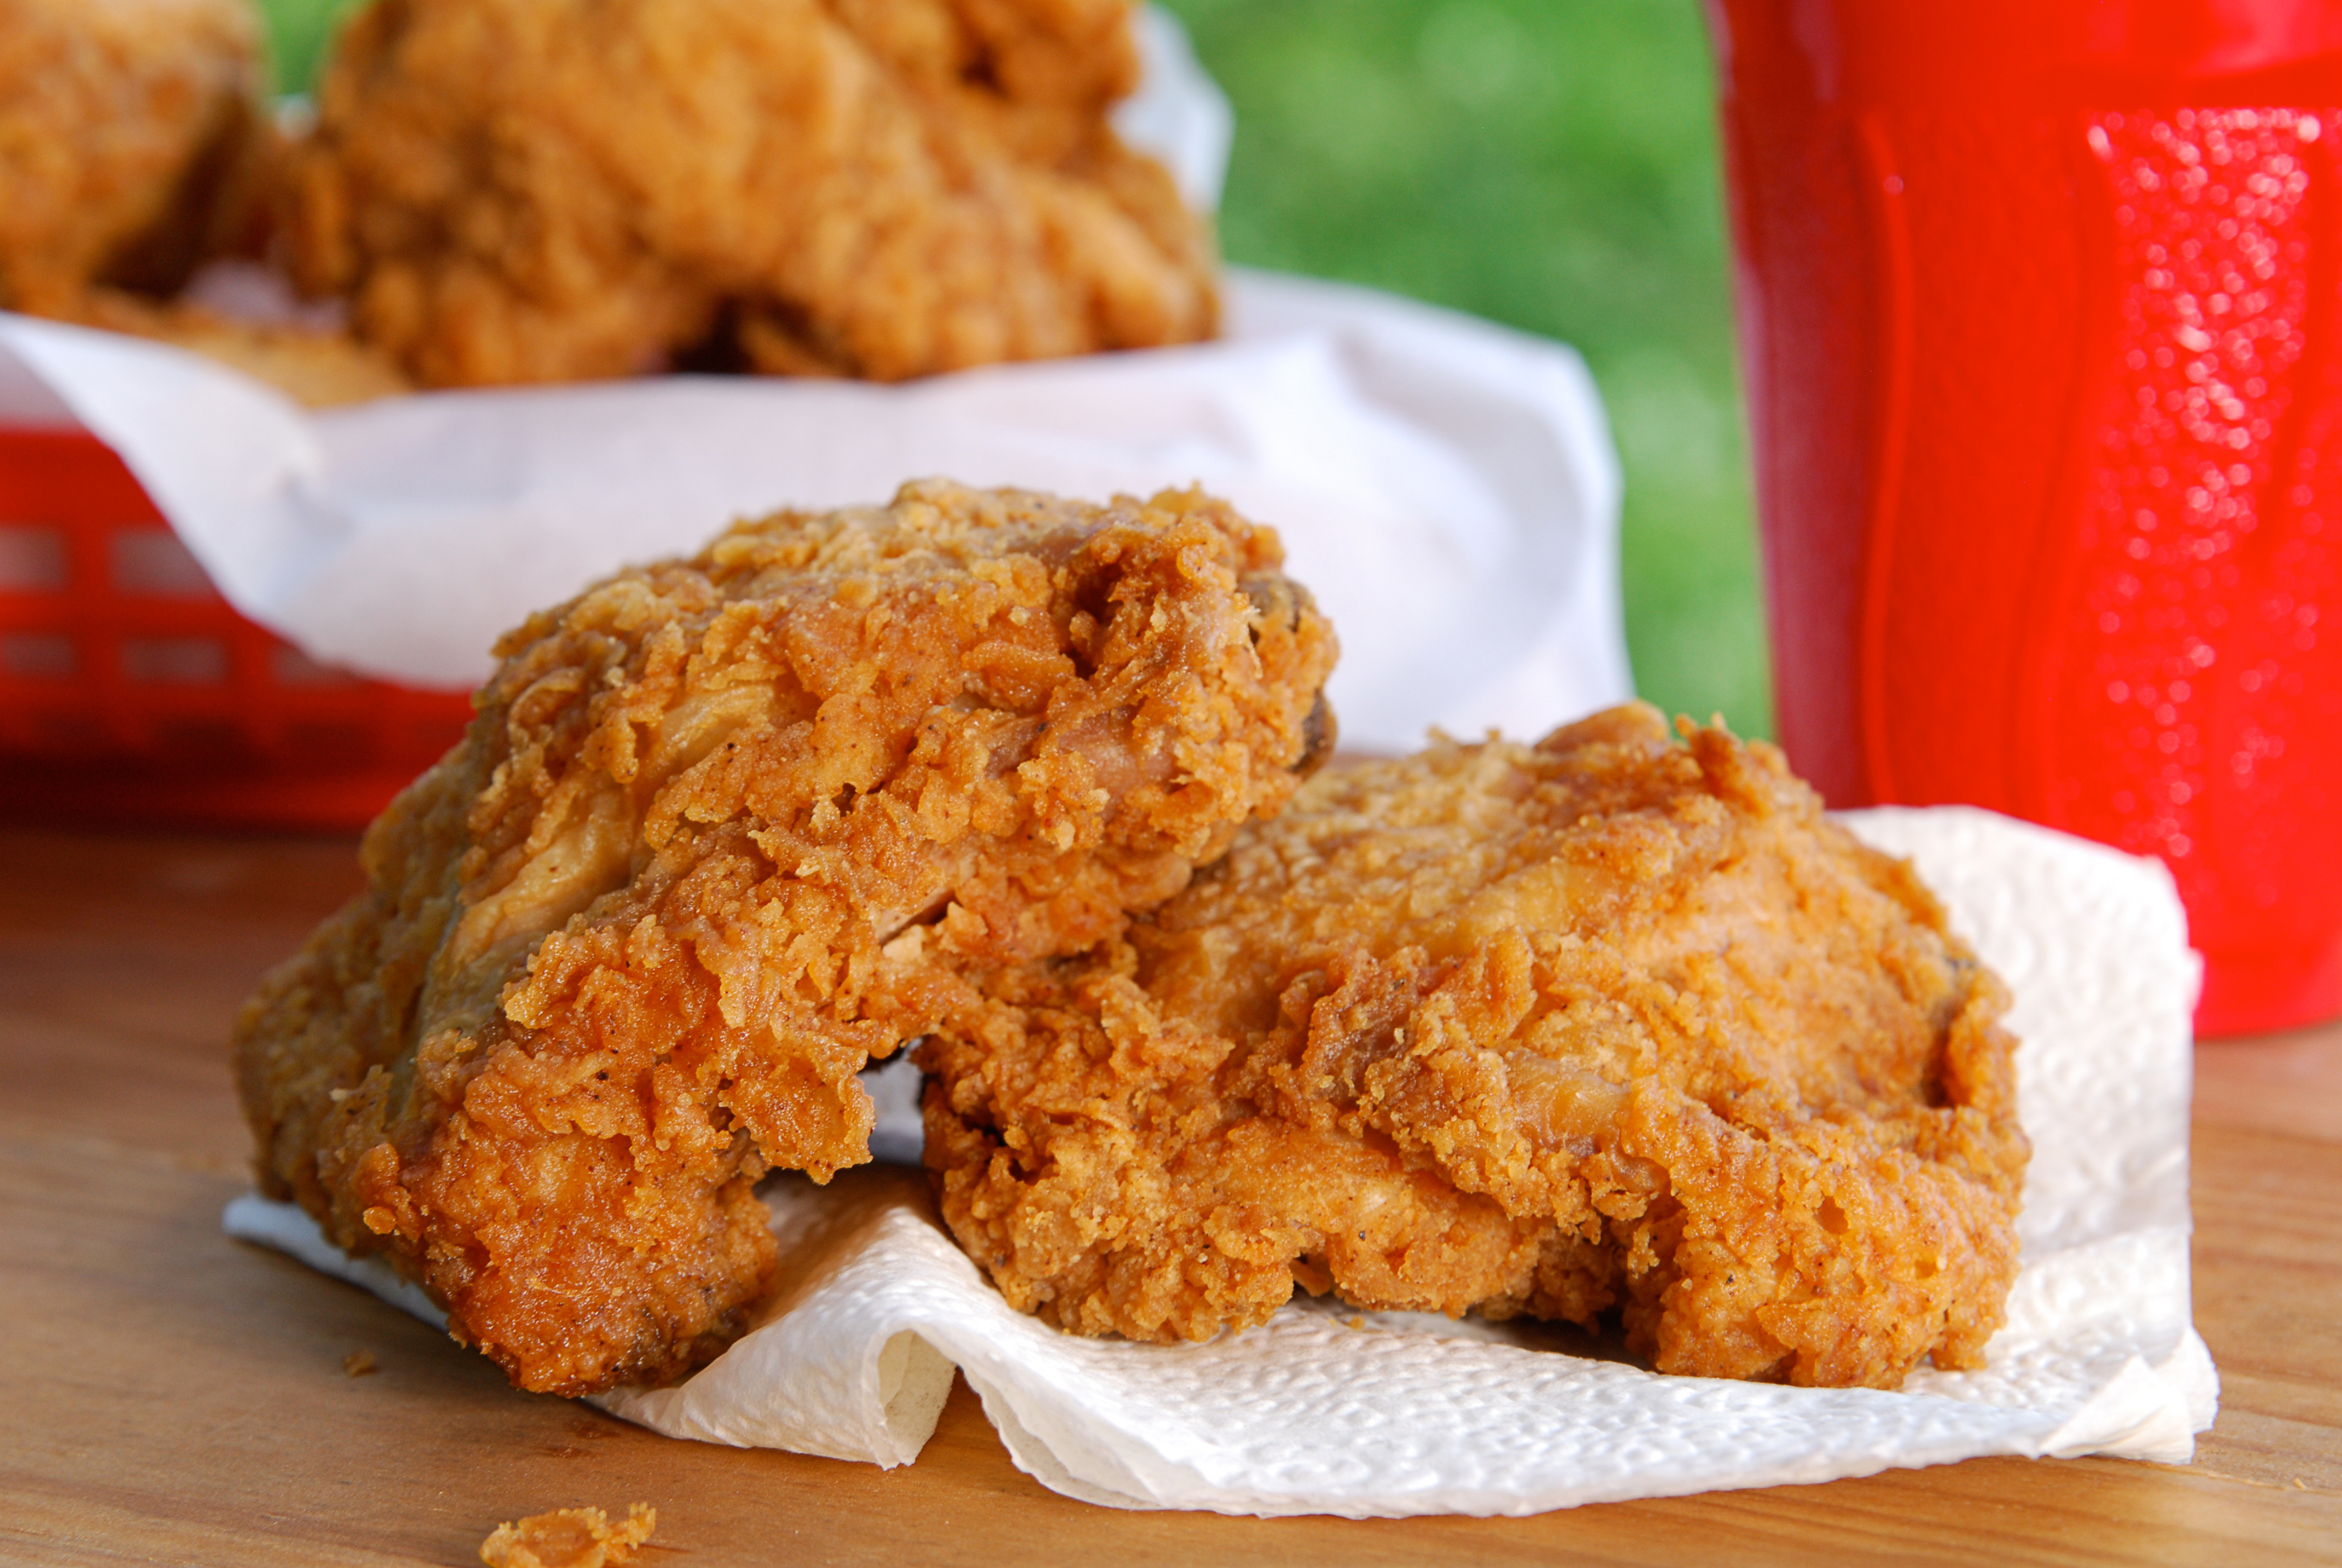 ... Dish Poultry - Chicken Fried Chicken Buttermilk Fried Chicken Recipe